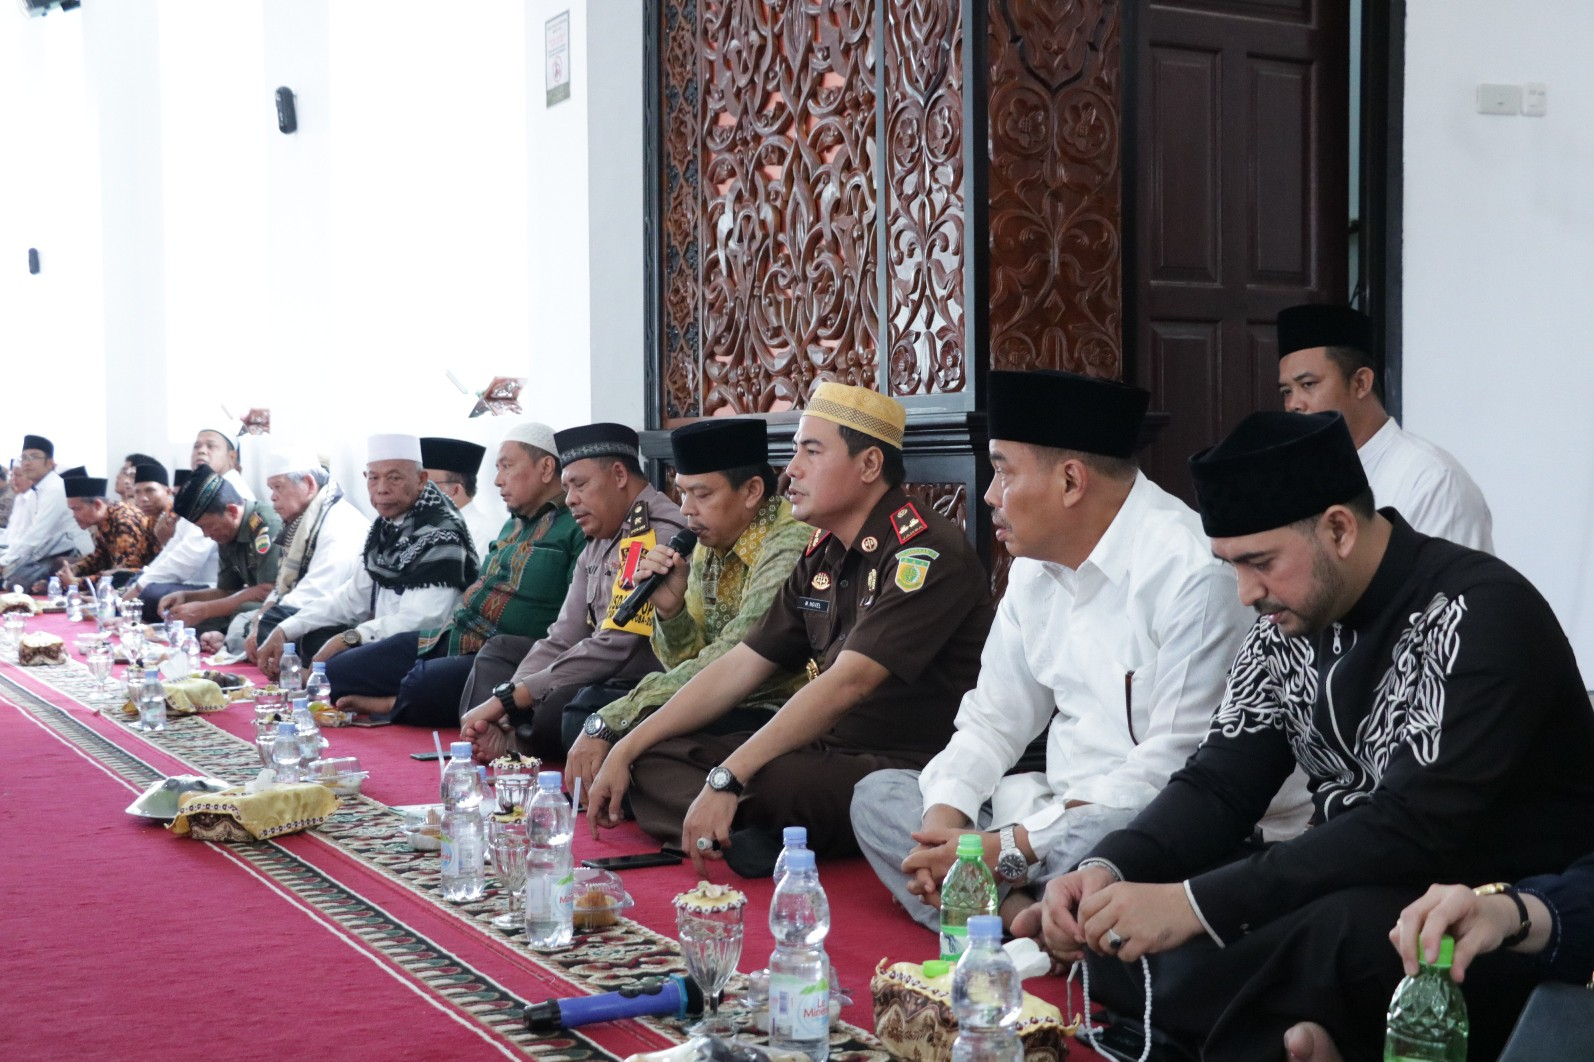 /photos/shares/berita_foto/november/MAULID NABI/IMG_5751.JPG